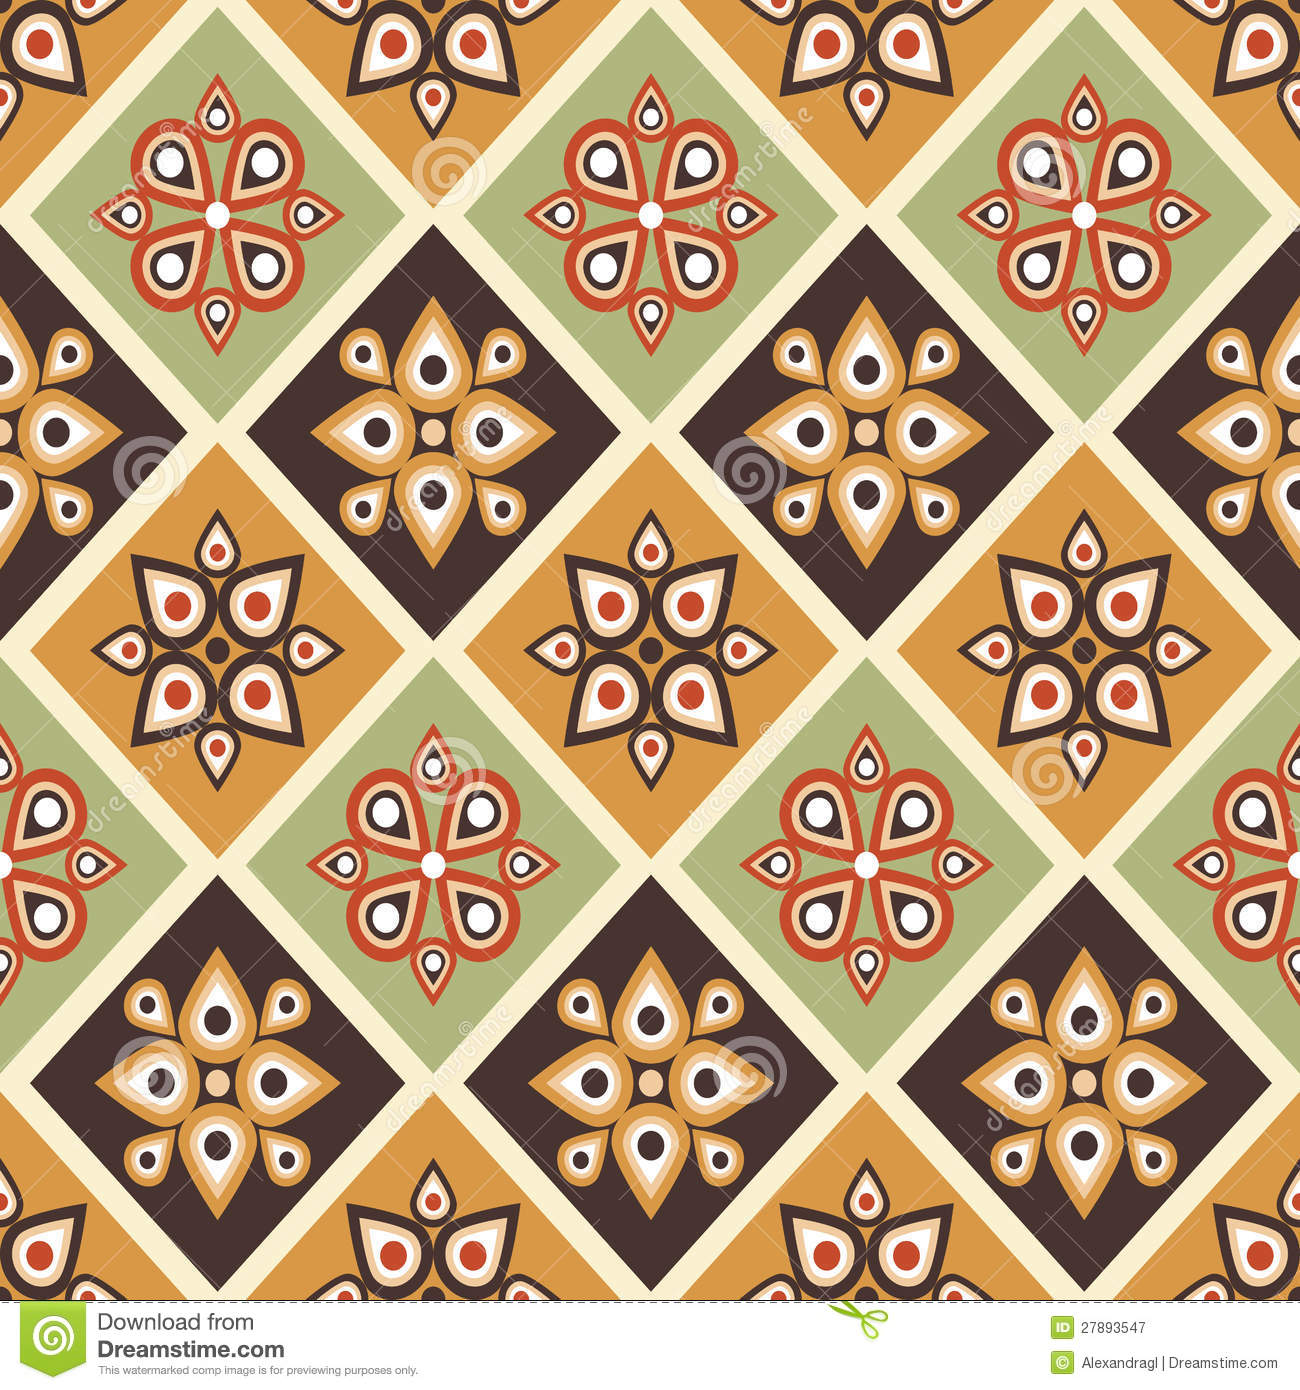 Retro Graphic Seamless Patterns Royalty Free Stock Photography ...